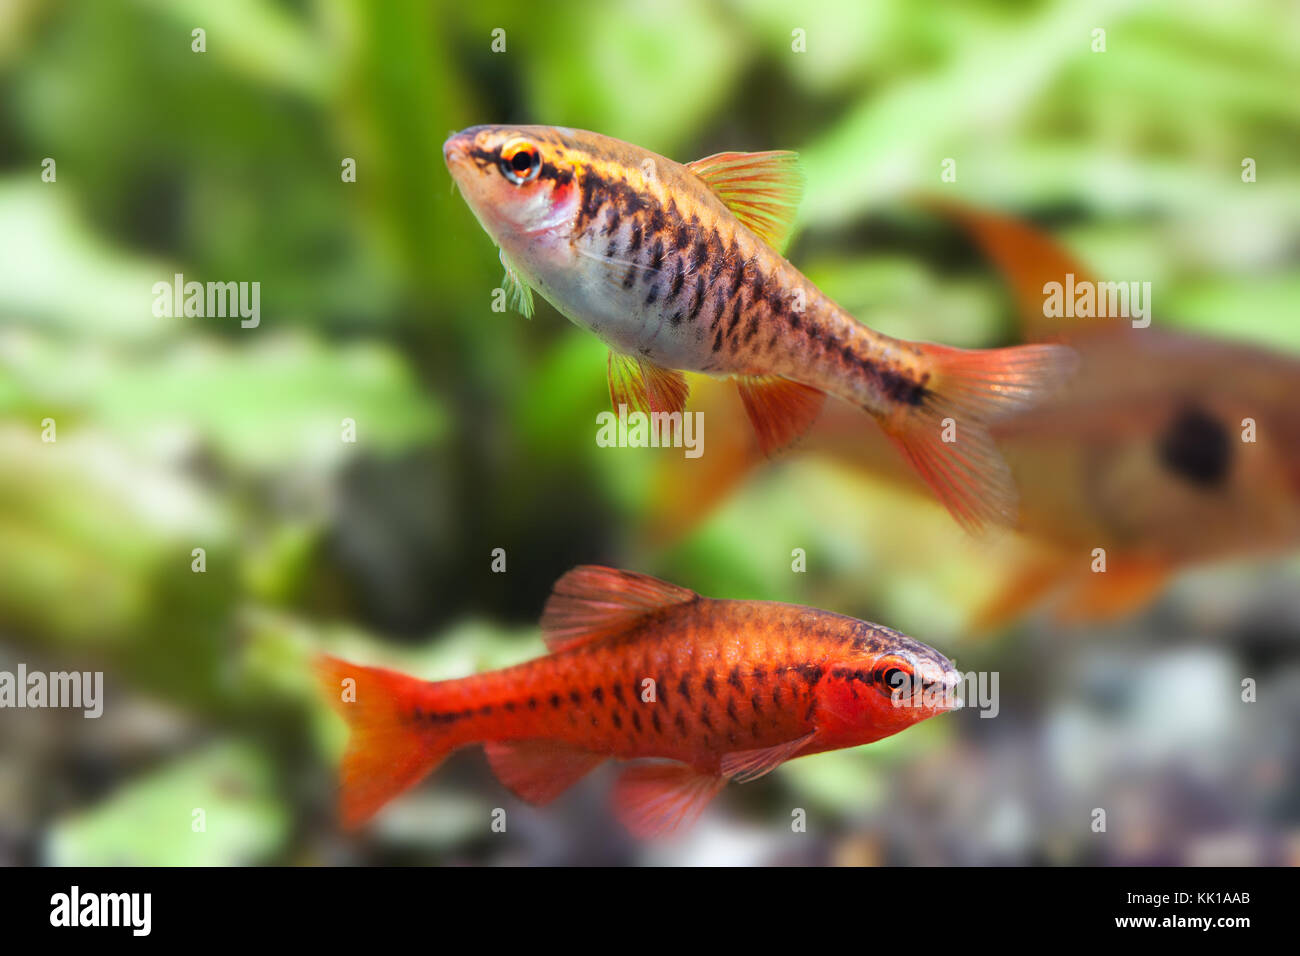 Aquaria still life scene, colorful freshwater fishes macro view, shallow depth of field. Cherry barb male fishes Stock Photo